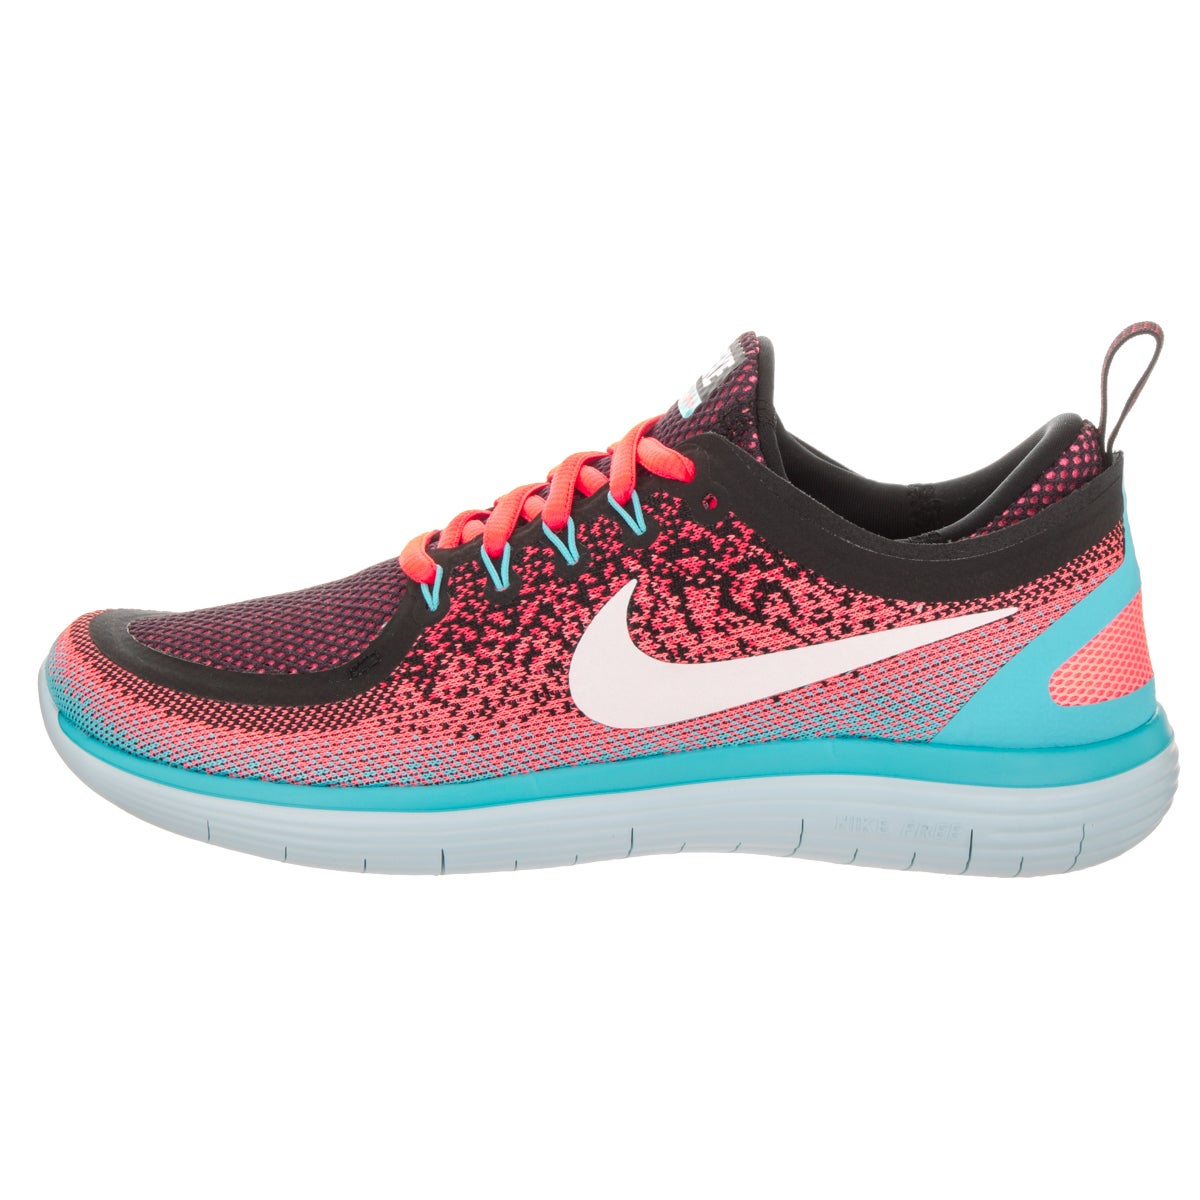 huge selection of 90c39 fe8cc Shop Nike Women s Free RN Distance 2 Running Shoes - Free Shipping Today -  Overstock - 14163282